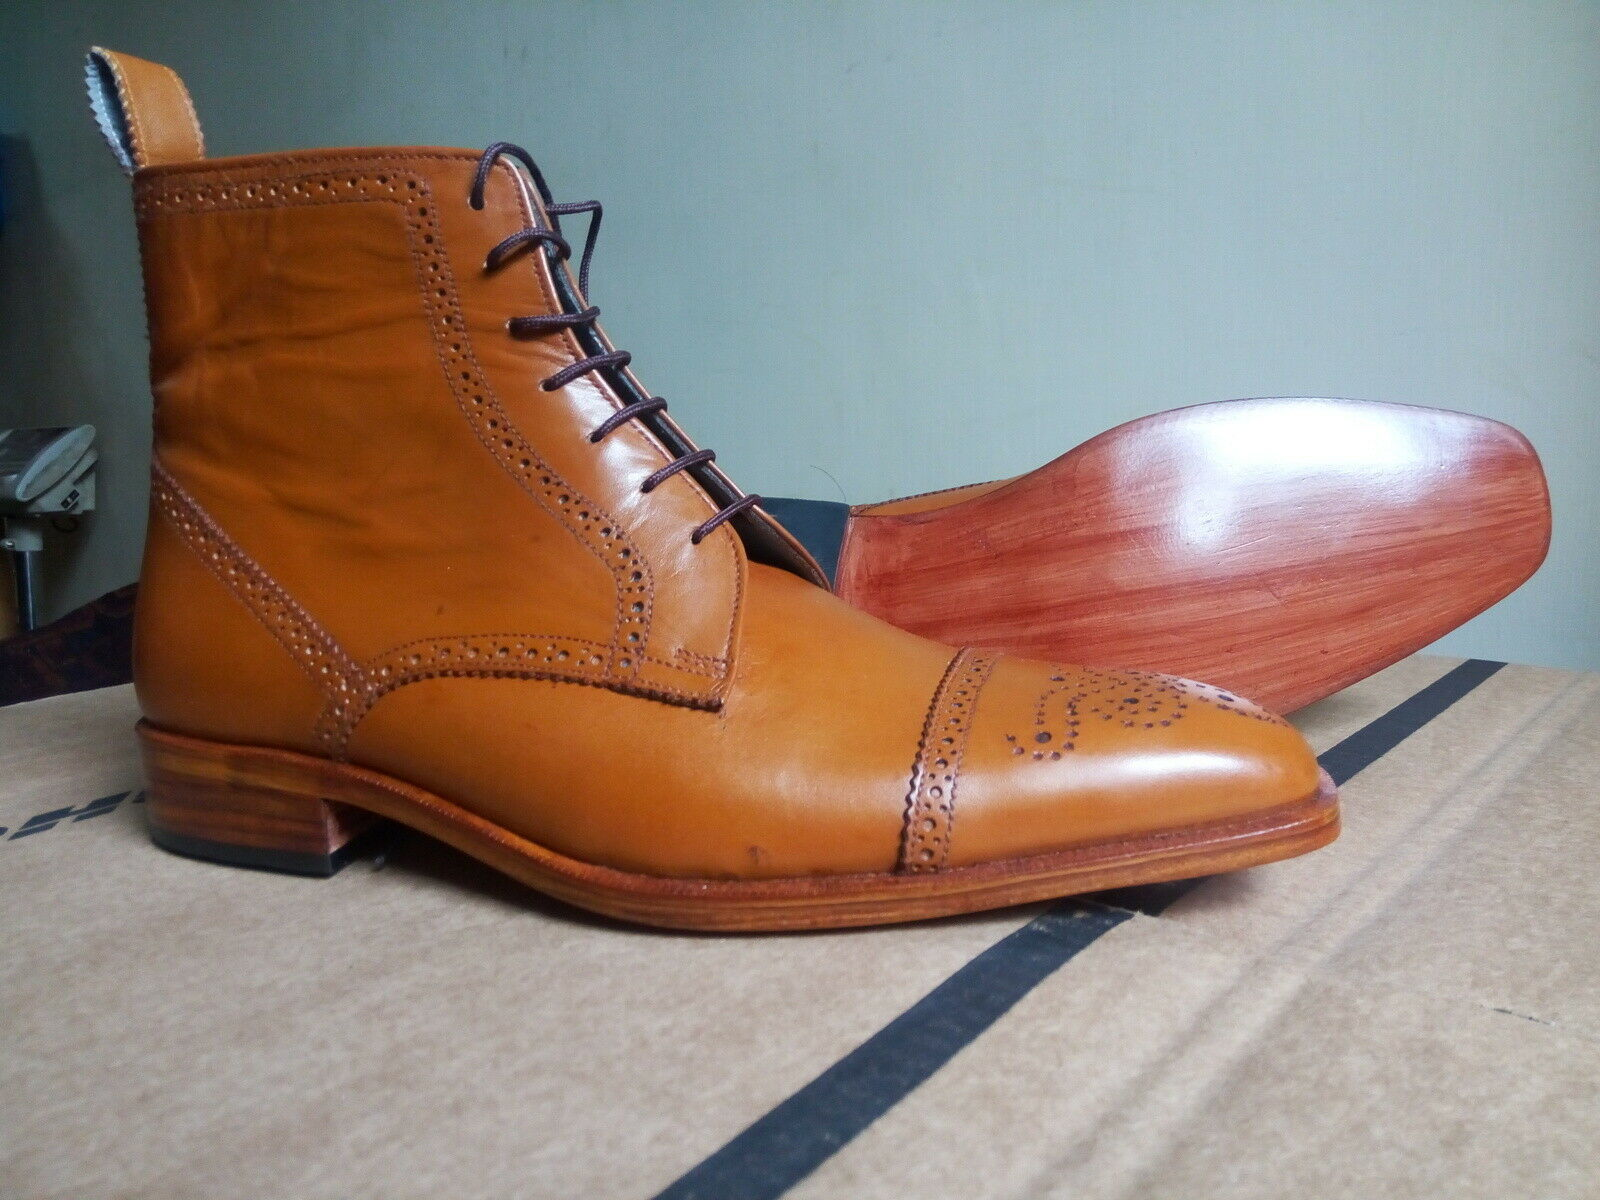 Woody Brown Tone Brogues Cap Toe Genuine Vintage High Ankle Leather LaceUp Boots